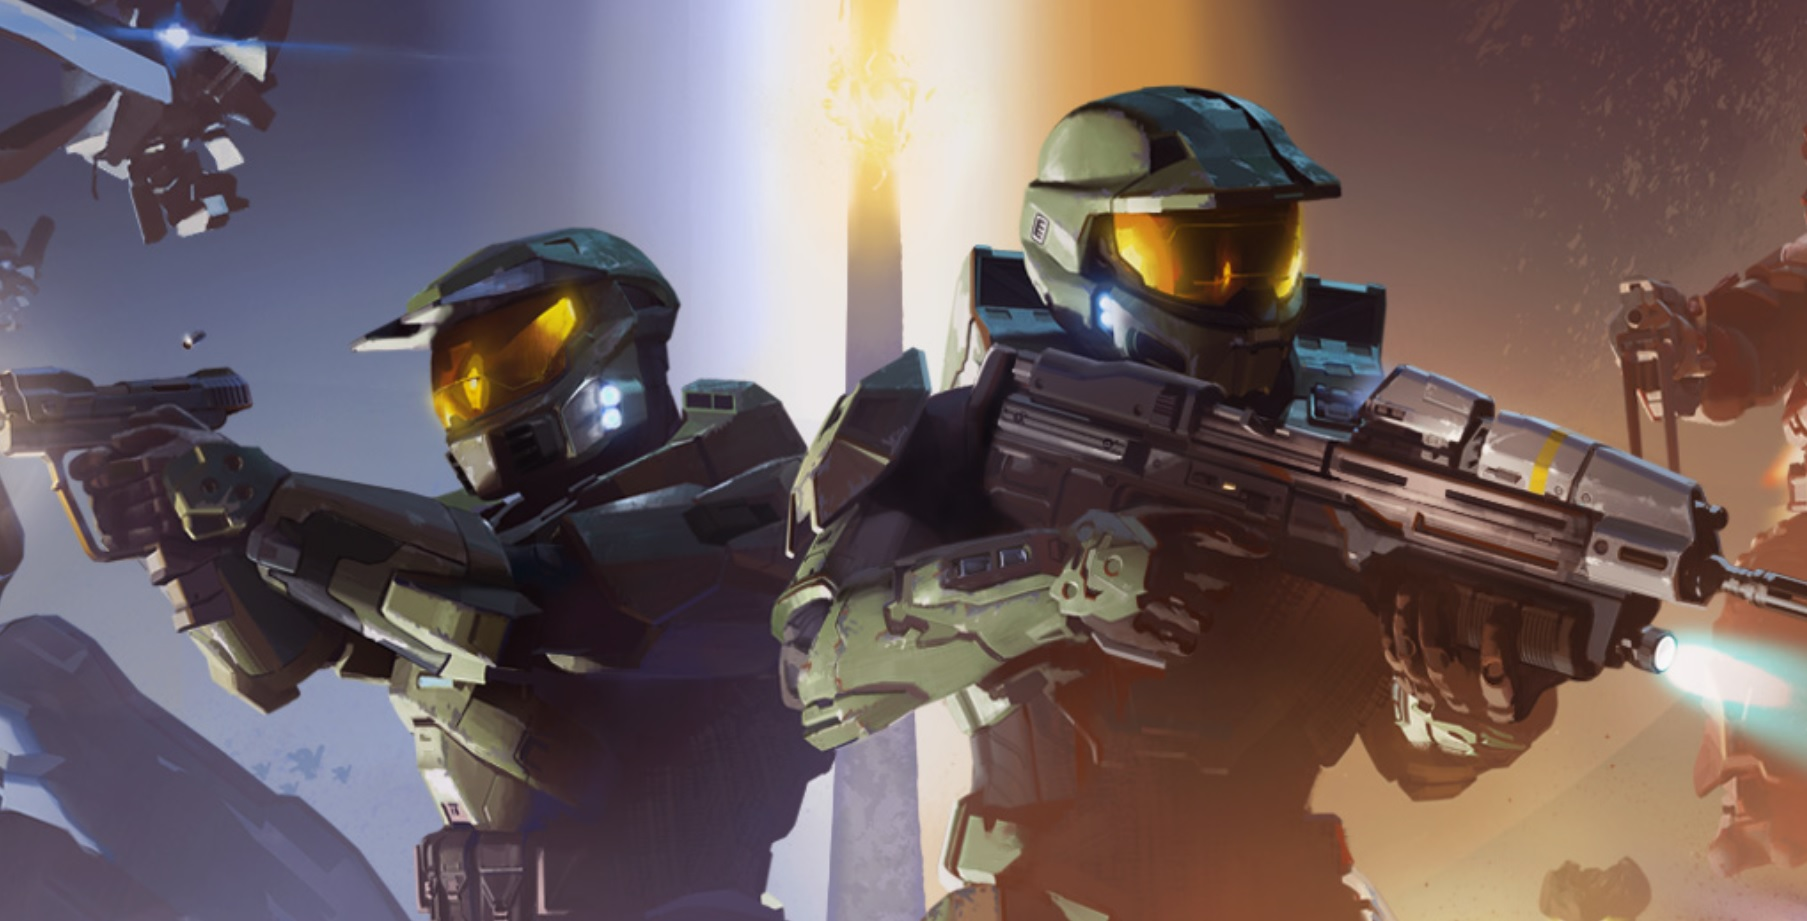 Halo turns 20 this year, and Microsoft is celebrating with a bangin' wallpaper screenshot